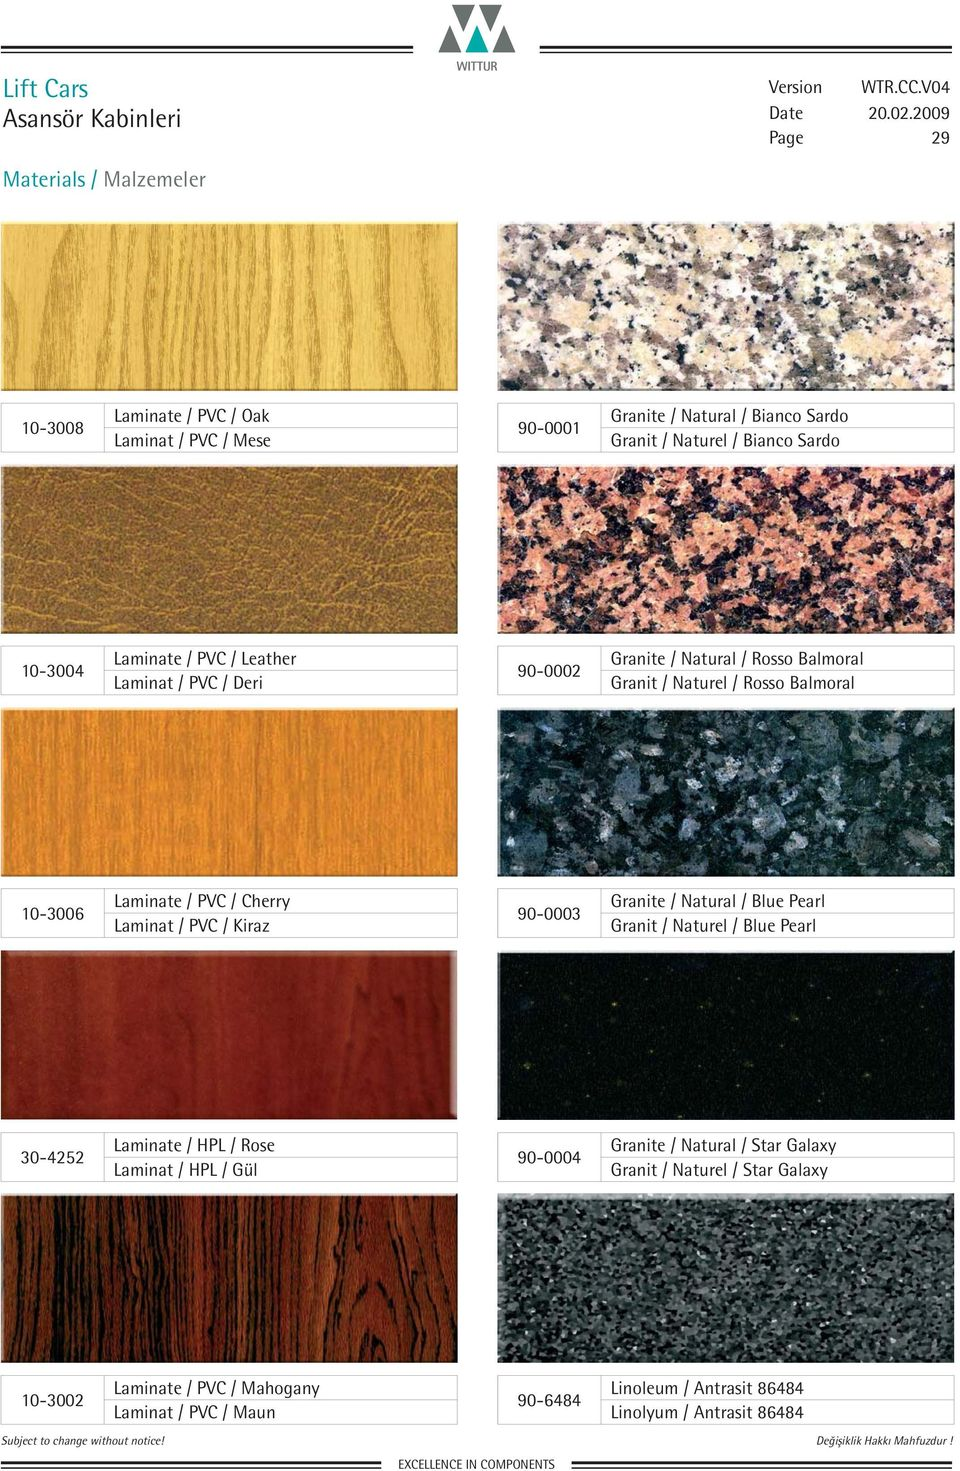 Laminat / PVC / Kiraz 90-0003 Granite / Natural / Blue Pearl Granit / Naturel / Blue Pearl 30-4252 Laminate / HPL / Rose Laminat / HPL / Gül 90-0004 Granite /